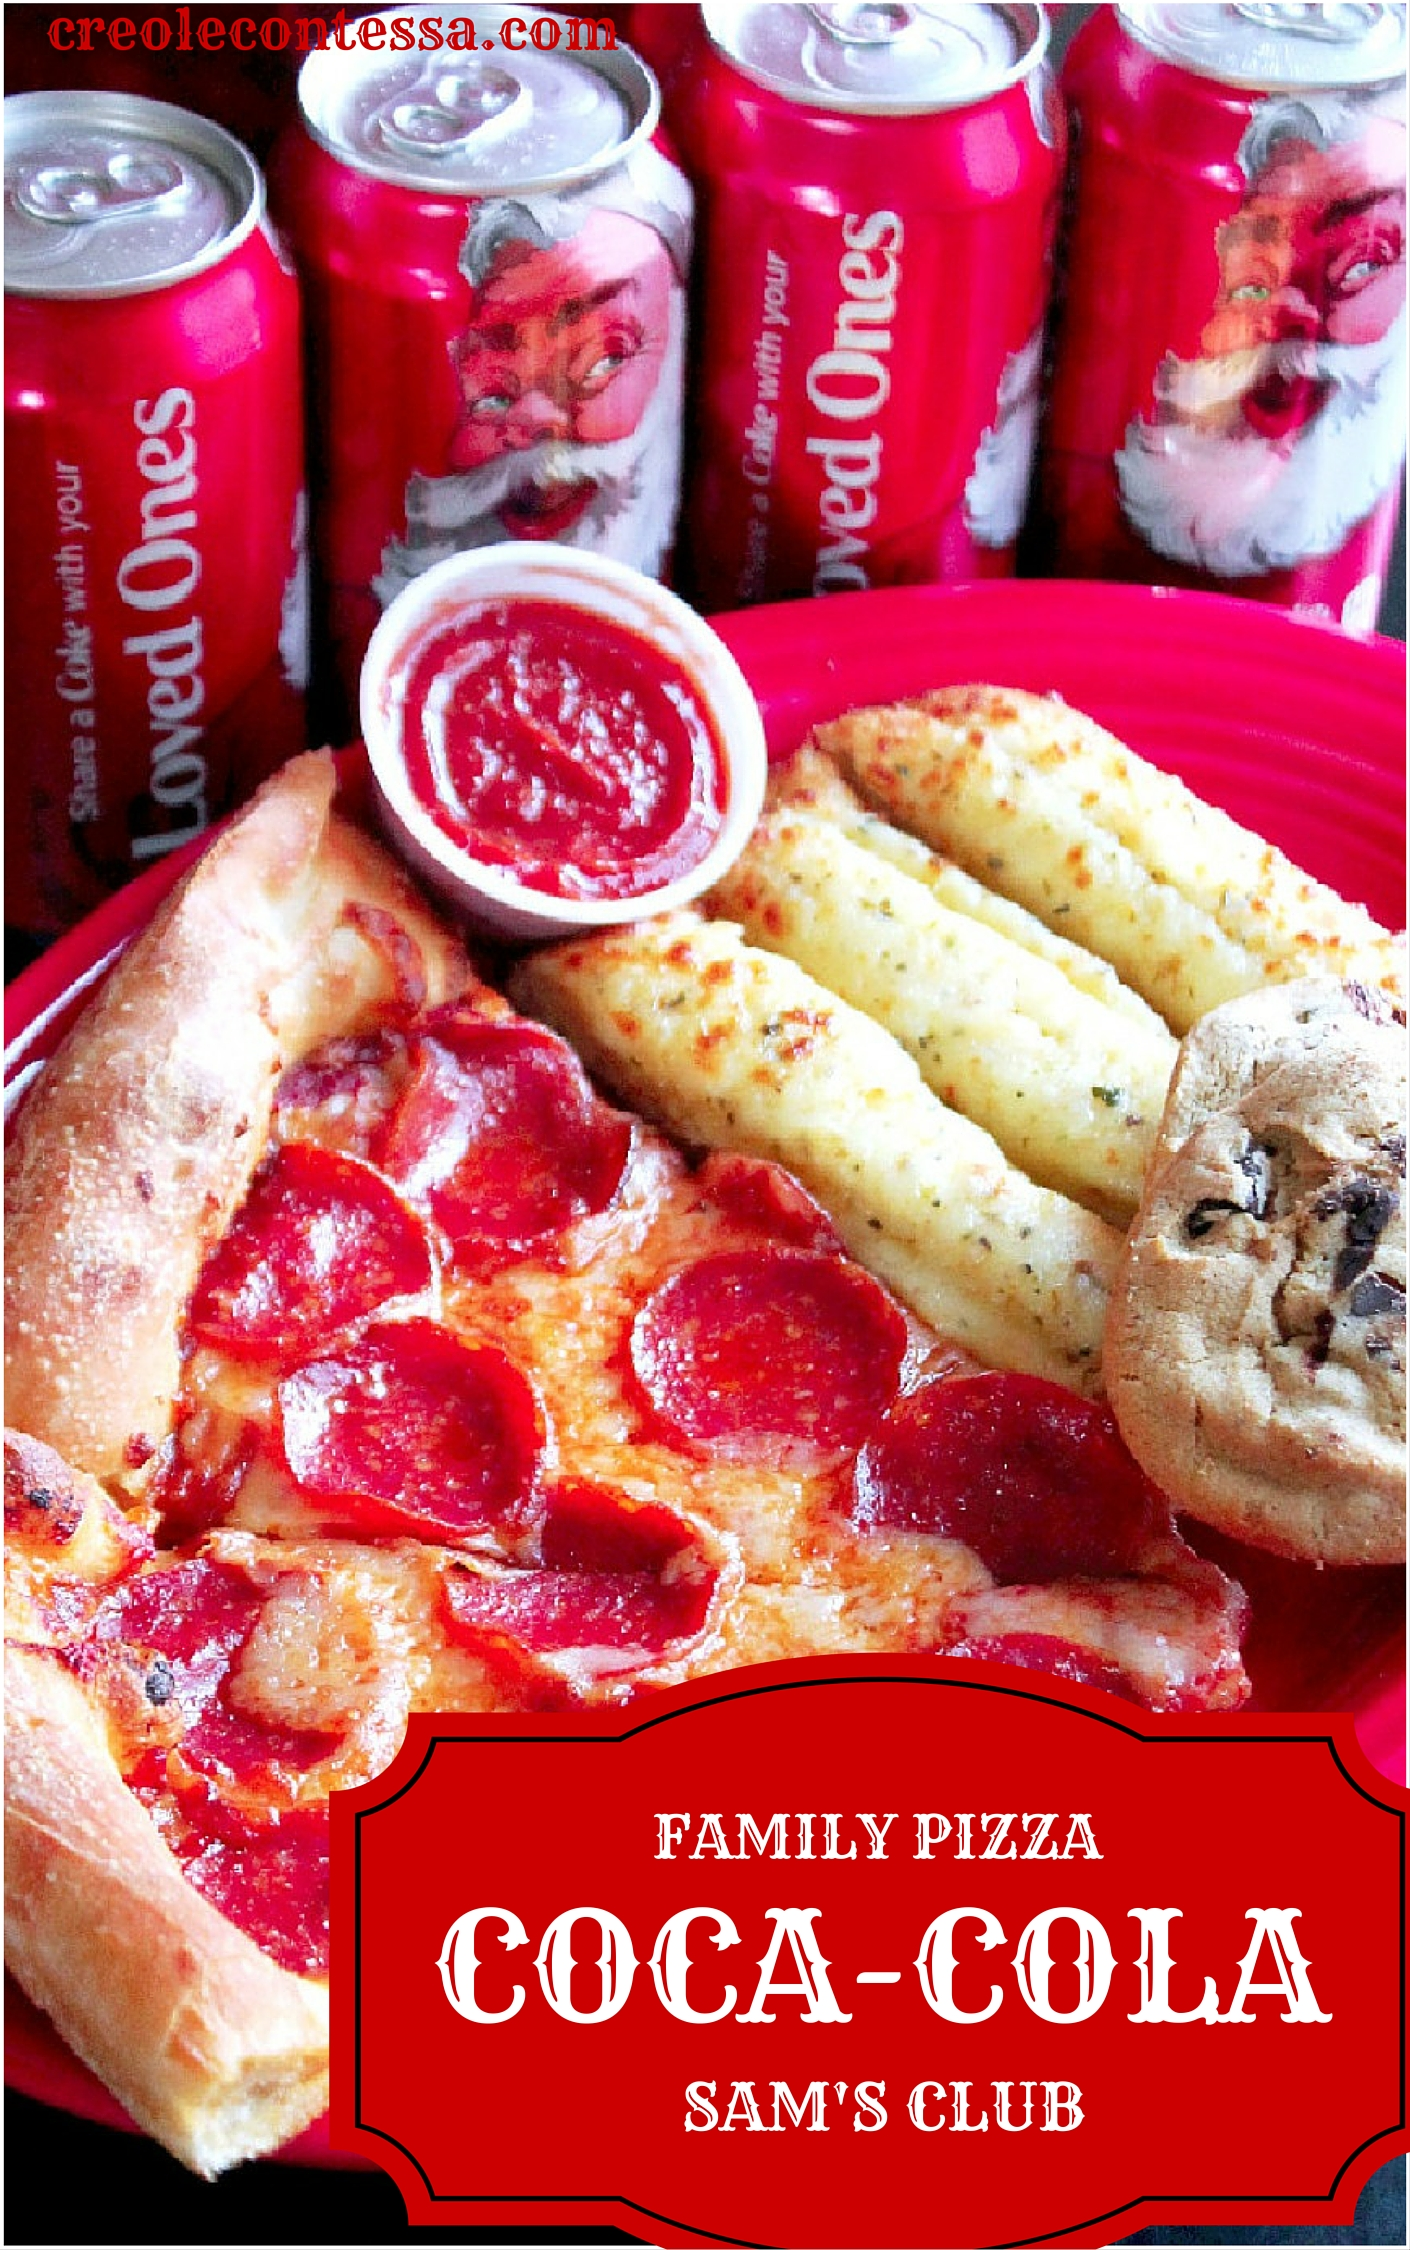 Coca Cola Family Pizza Combo at Sam's Club-Creole Contessa